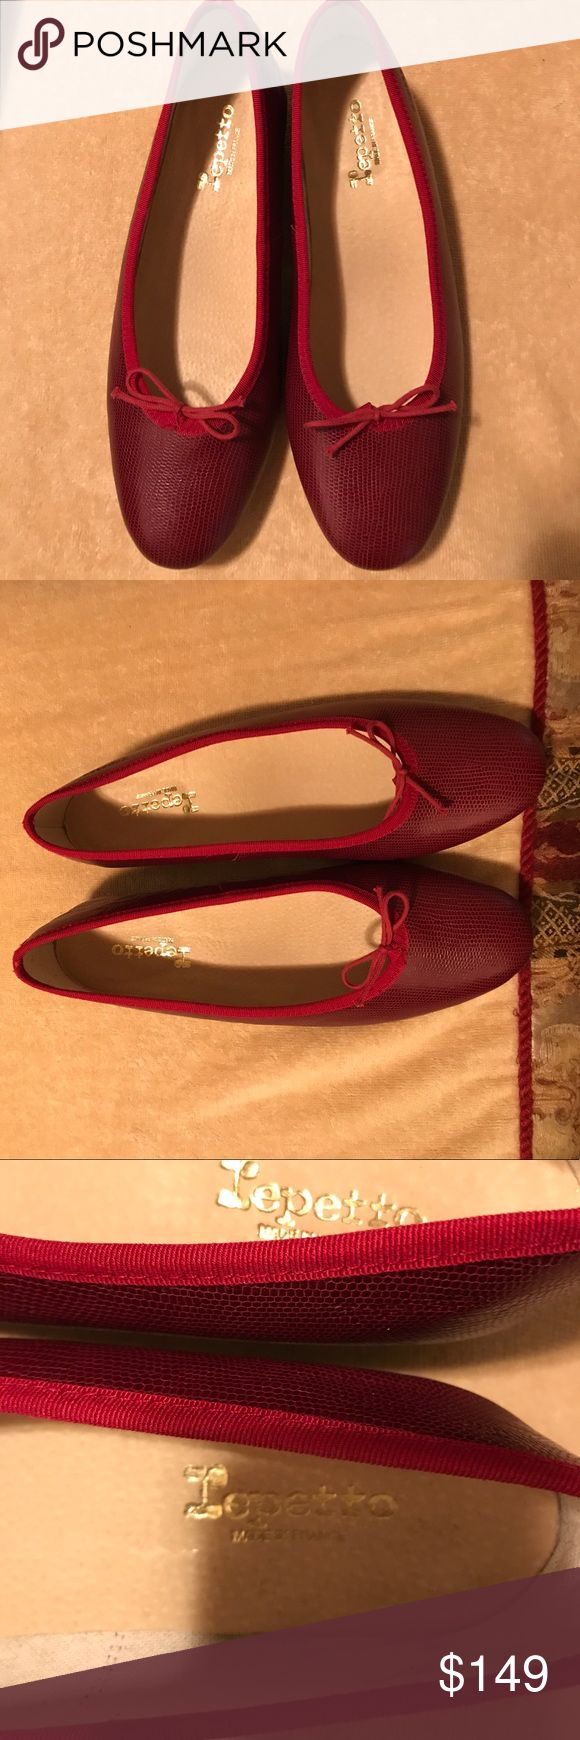 🔴GORGEOUS REPETTO CRIMSON LOW HEEL SHOES 🔴 NWOT. REPETTO  SHOES ARE SYNONYMS WITH BEAUTY AND COMFORT. THESE LOW HEELED SHOES HAVE TEXTURED EXTERIOR SOLES , HAVE VELVET CORDING IN RED AND DAINTY BOWS. THE HEELS ARE MADE OF WOOD. MADE IN FRANCE. THERE IS A SMALL CREASE FROM STORAGE ON ONE IF THE HEELS. DEFINITELY DOES NOT AFFECT BEAUTY OR WEAR. NEVER BEEN WORN. LISTING IS OVER HALF THE RETAIL. Repetto Shoes Heels